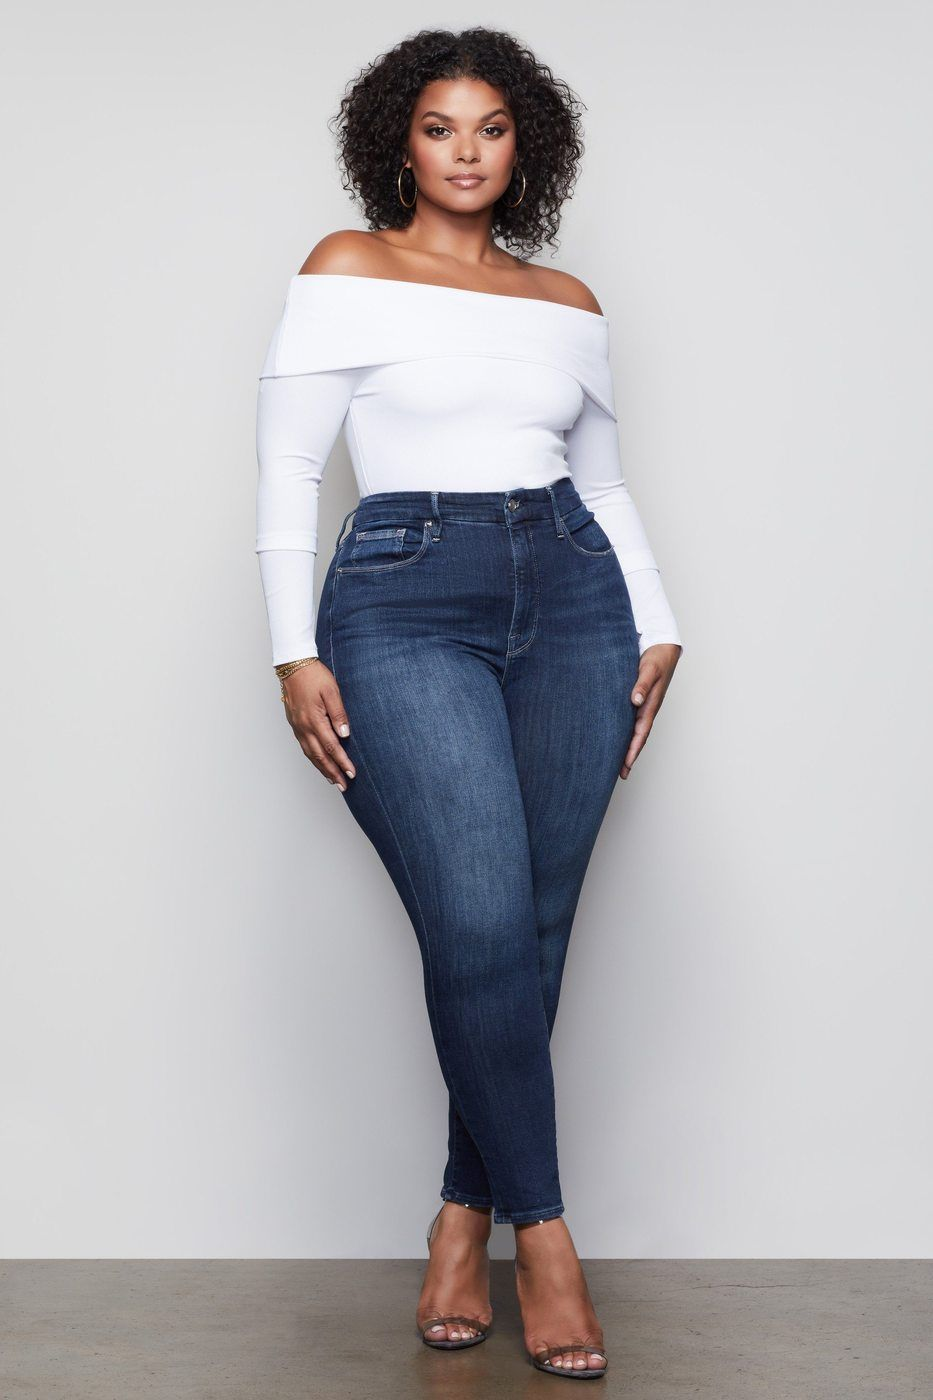 Big Size Tops For Women Swimsuits For Plus Size Women Big Curvy Plus Size The Plus Size Store